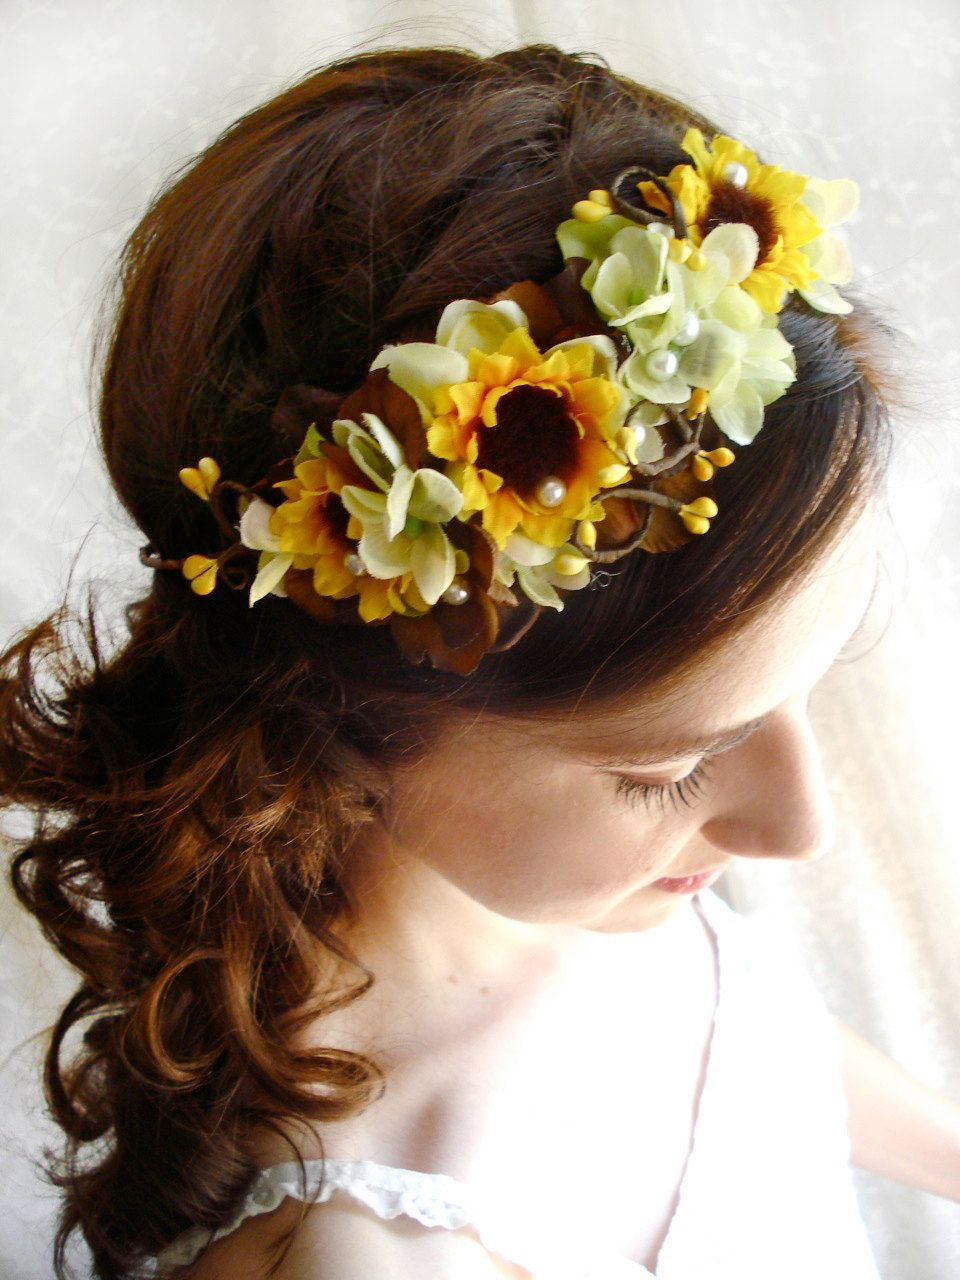 sunflower headpiece for wedding | sunflower head wreath, yellow